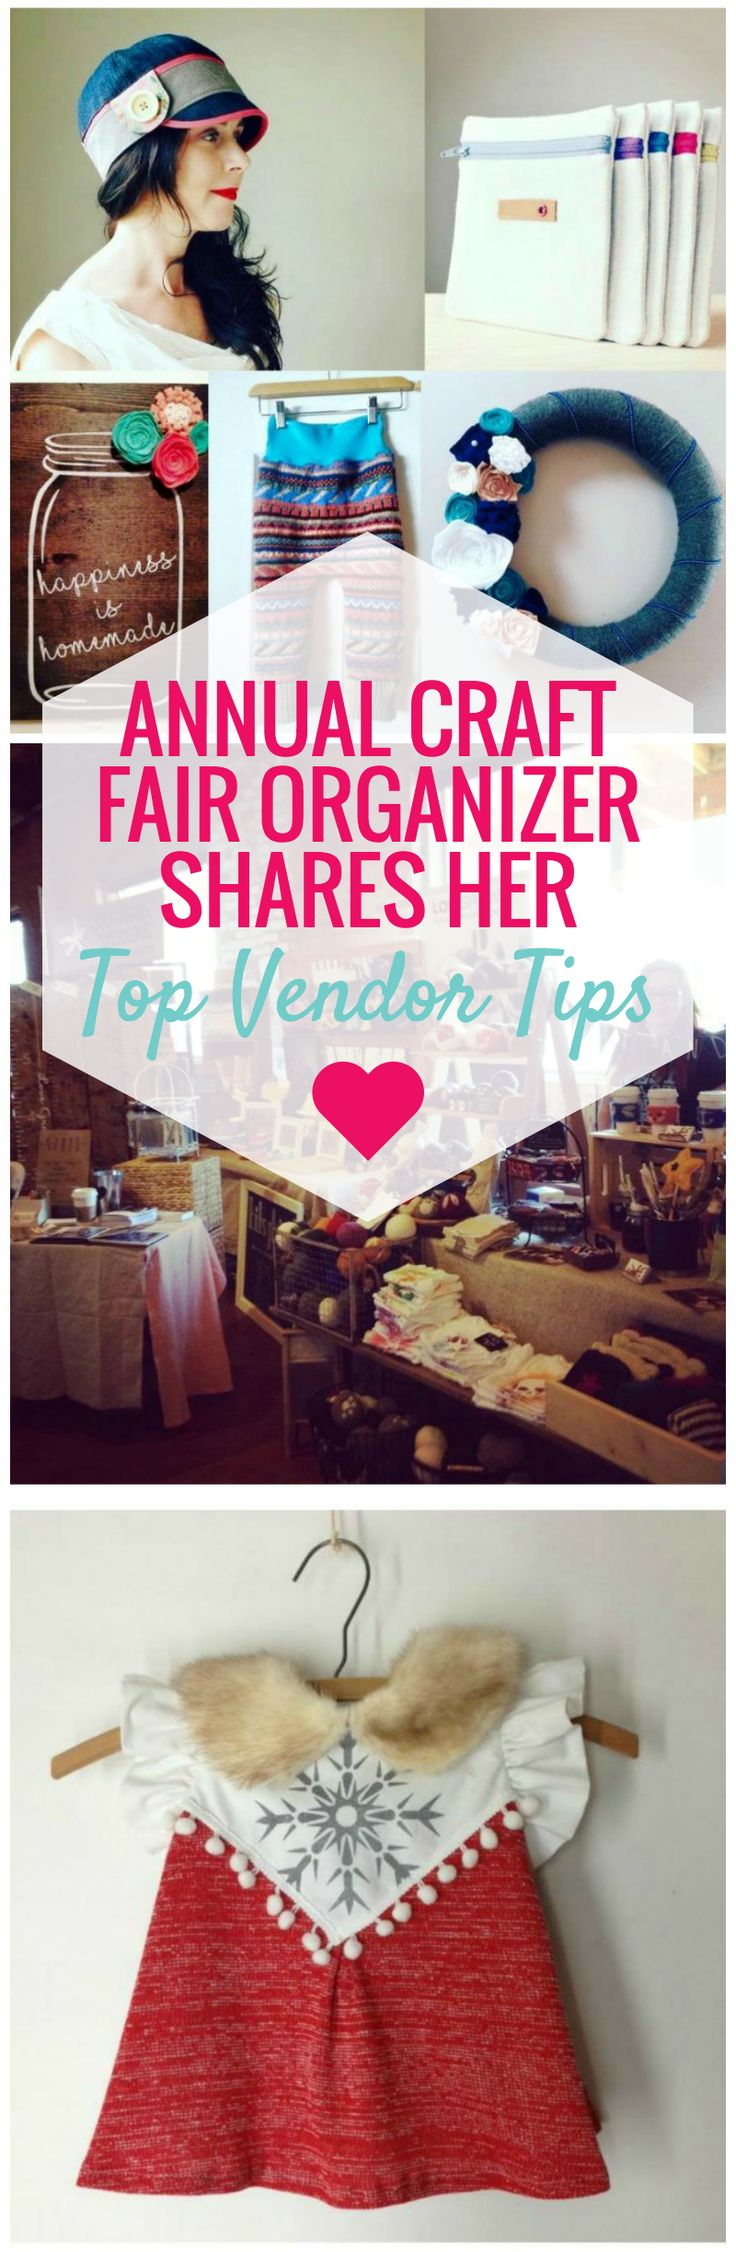 A popular craft fair that has been happening coast to coast for the past 4 years. They share their best tips for vendors to get the most out of craft fairs.